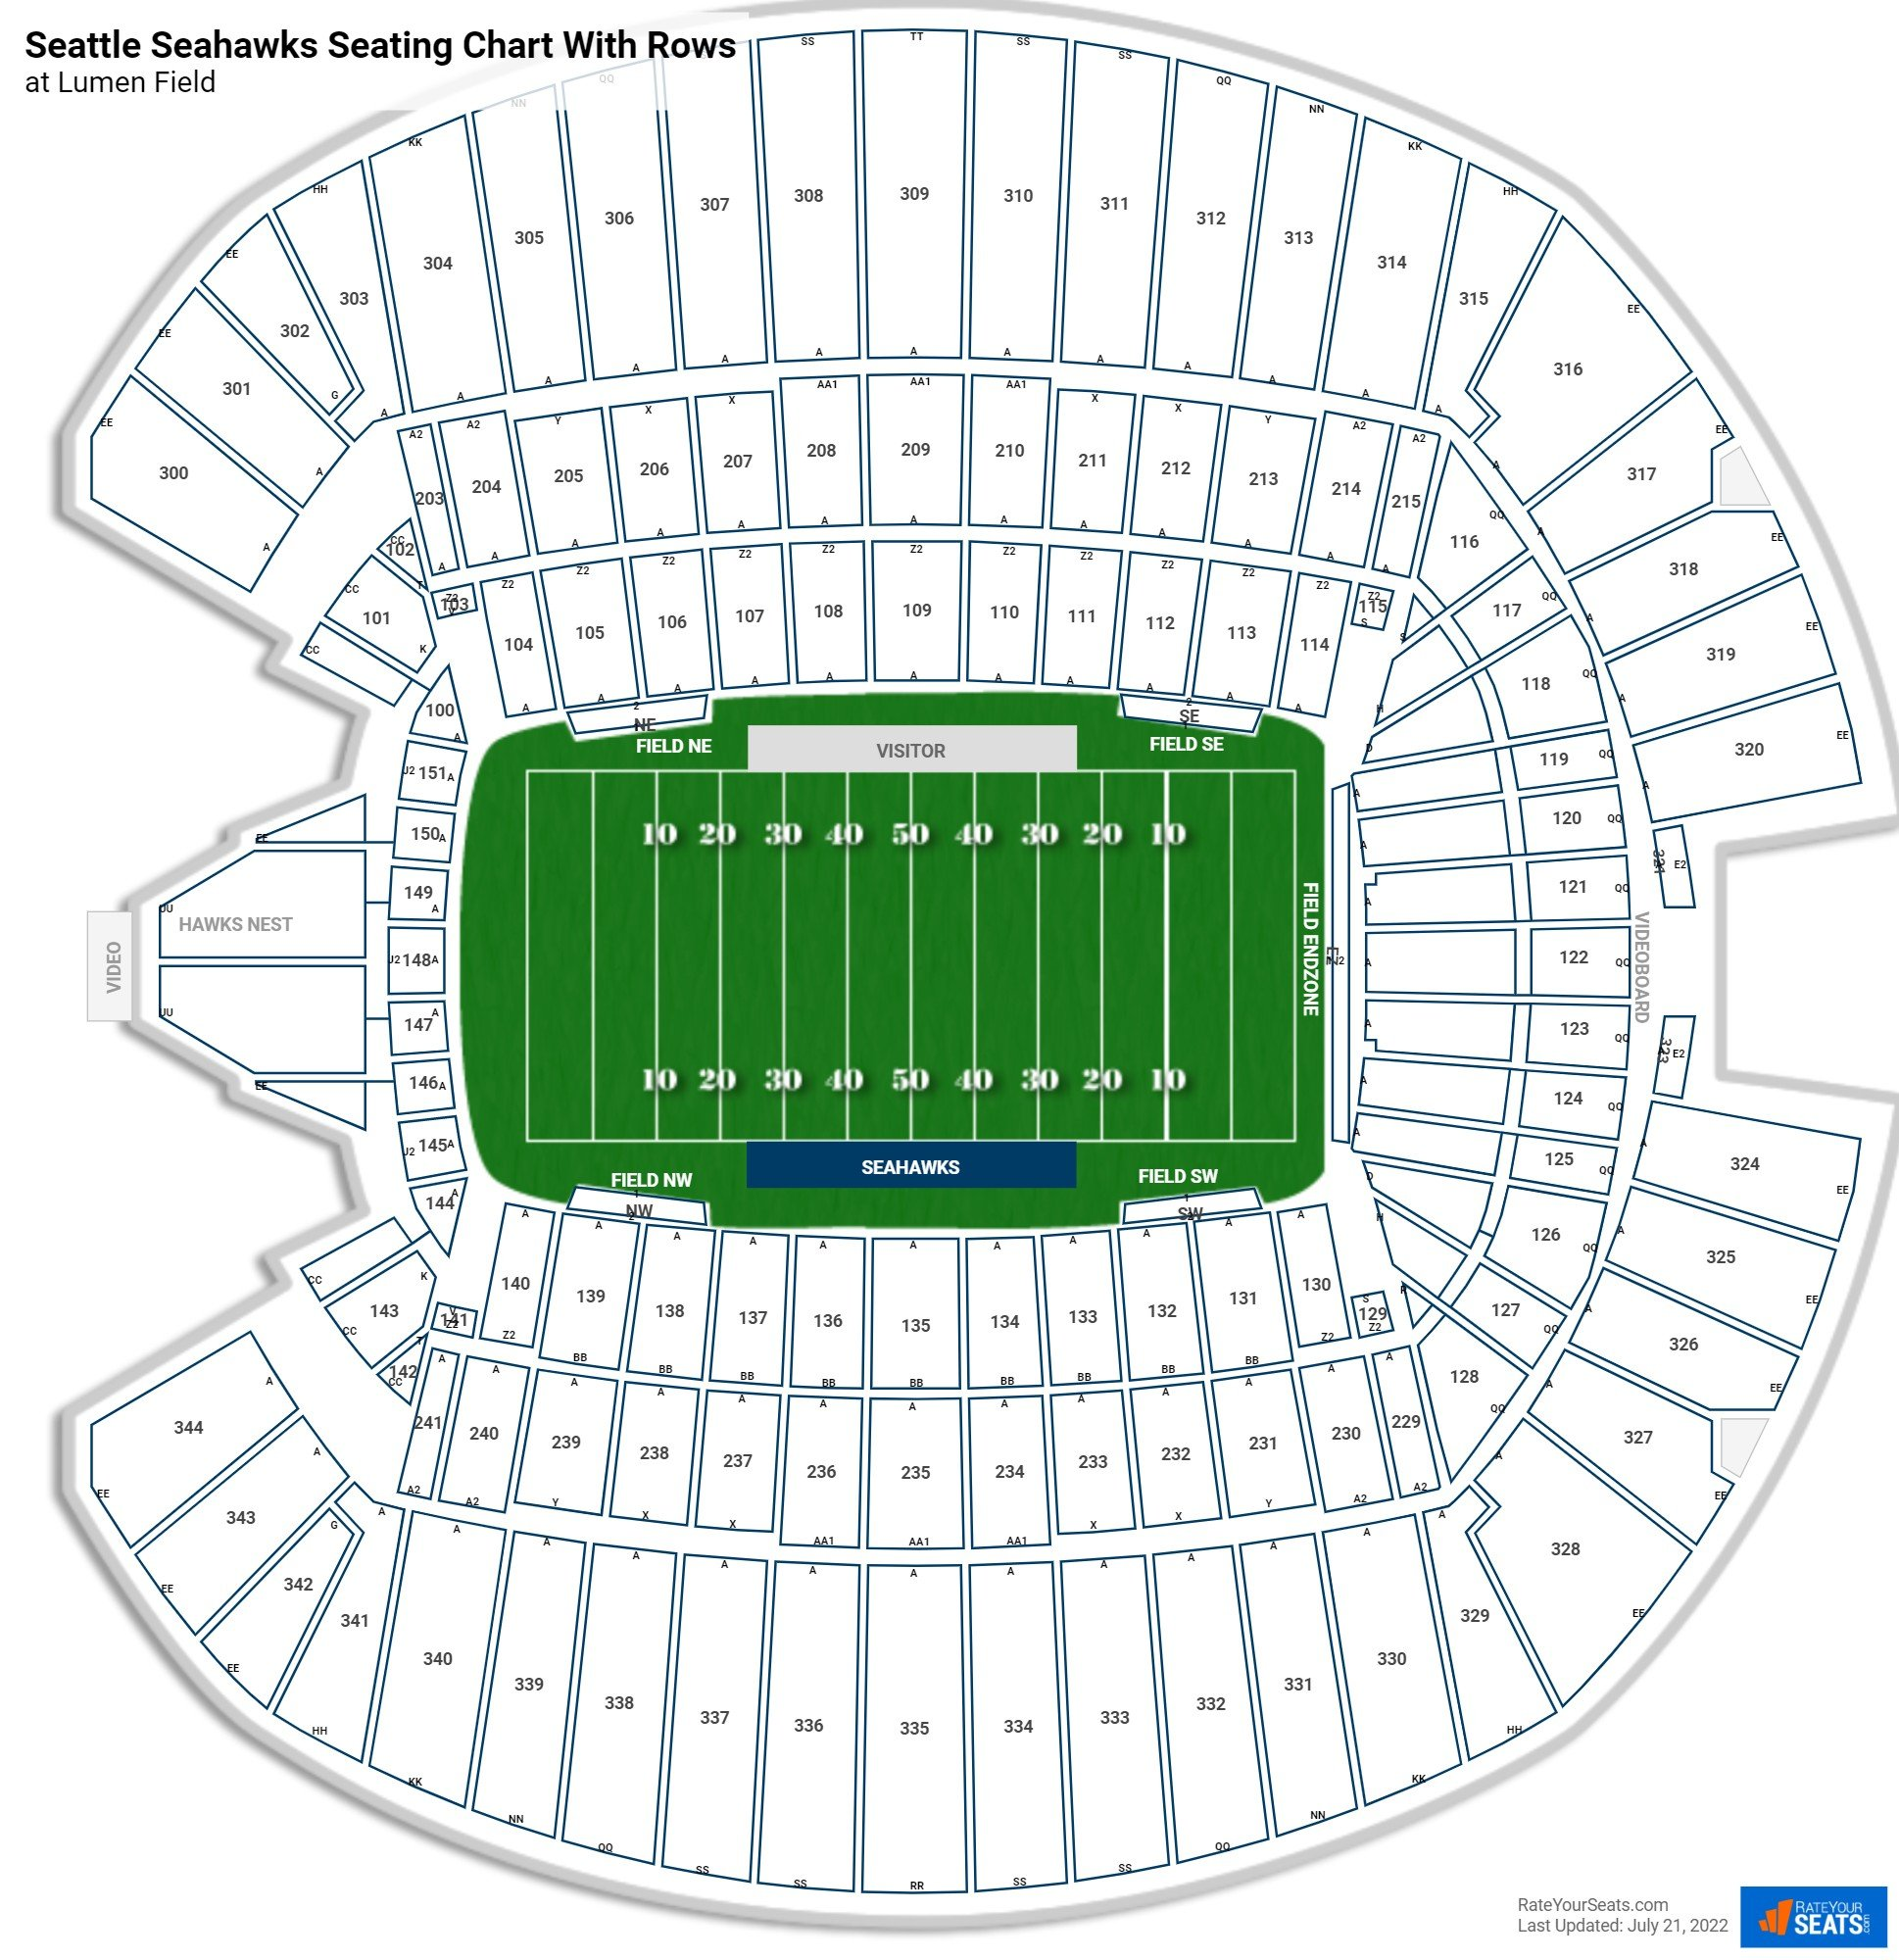 CenturyLink Field seating chart with rows football